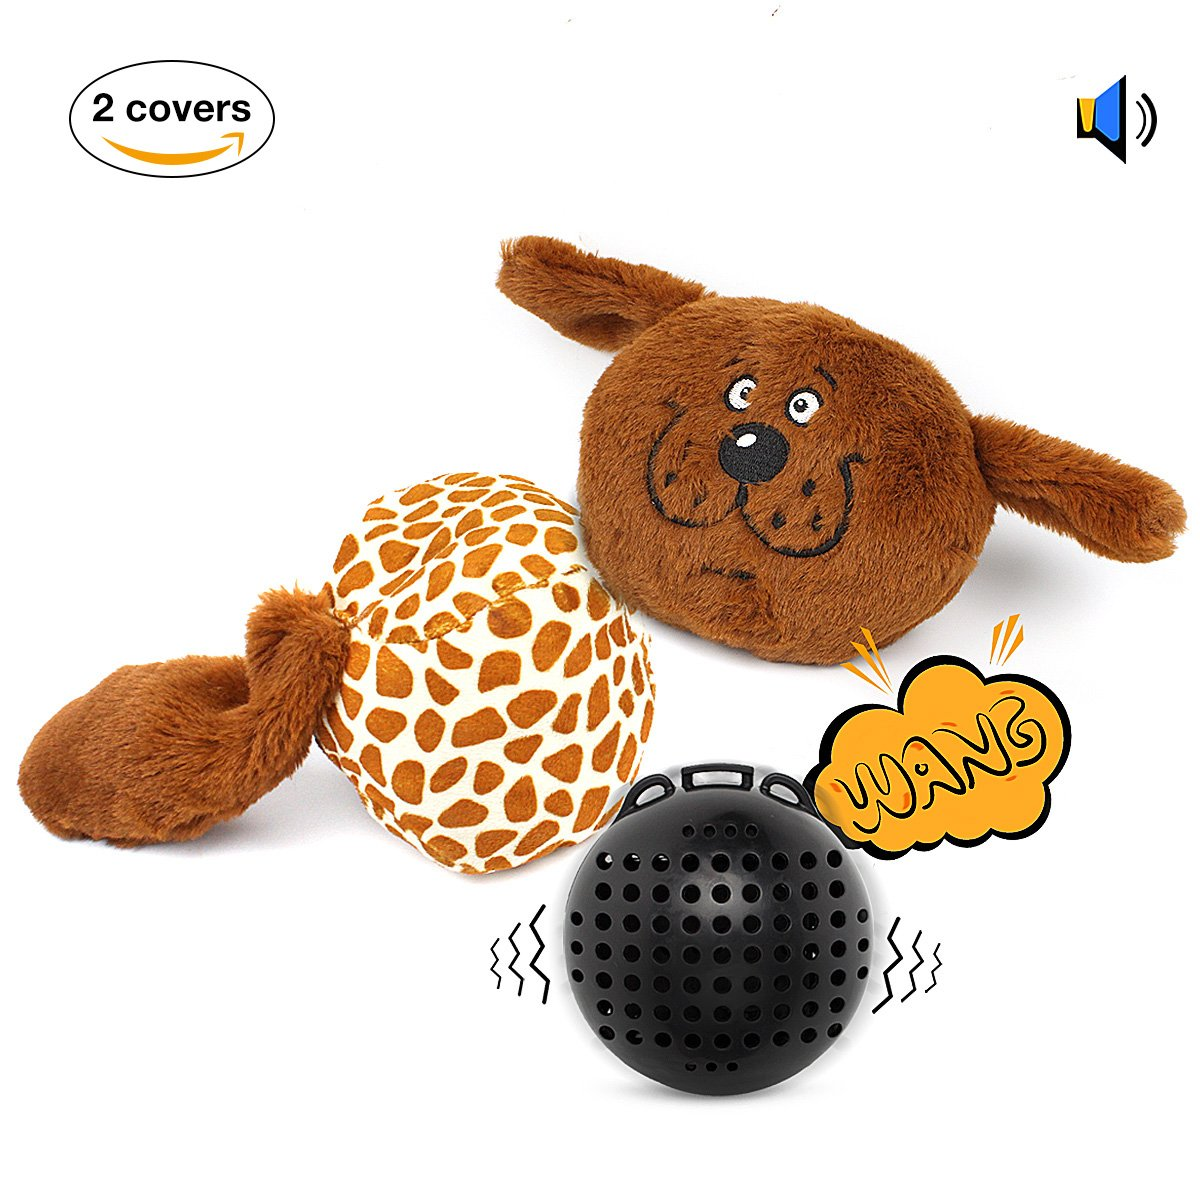 Kailian Dog Plush Squeaky Toy Electronic Shake Squeaky Plush Toys for Dog Squeaker Self Entertainment Giggle Ball for Dogs Electronic Bouncer for Medium Size Dogs 2 Covers and 1 Ball